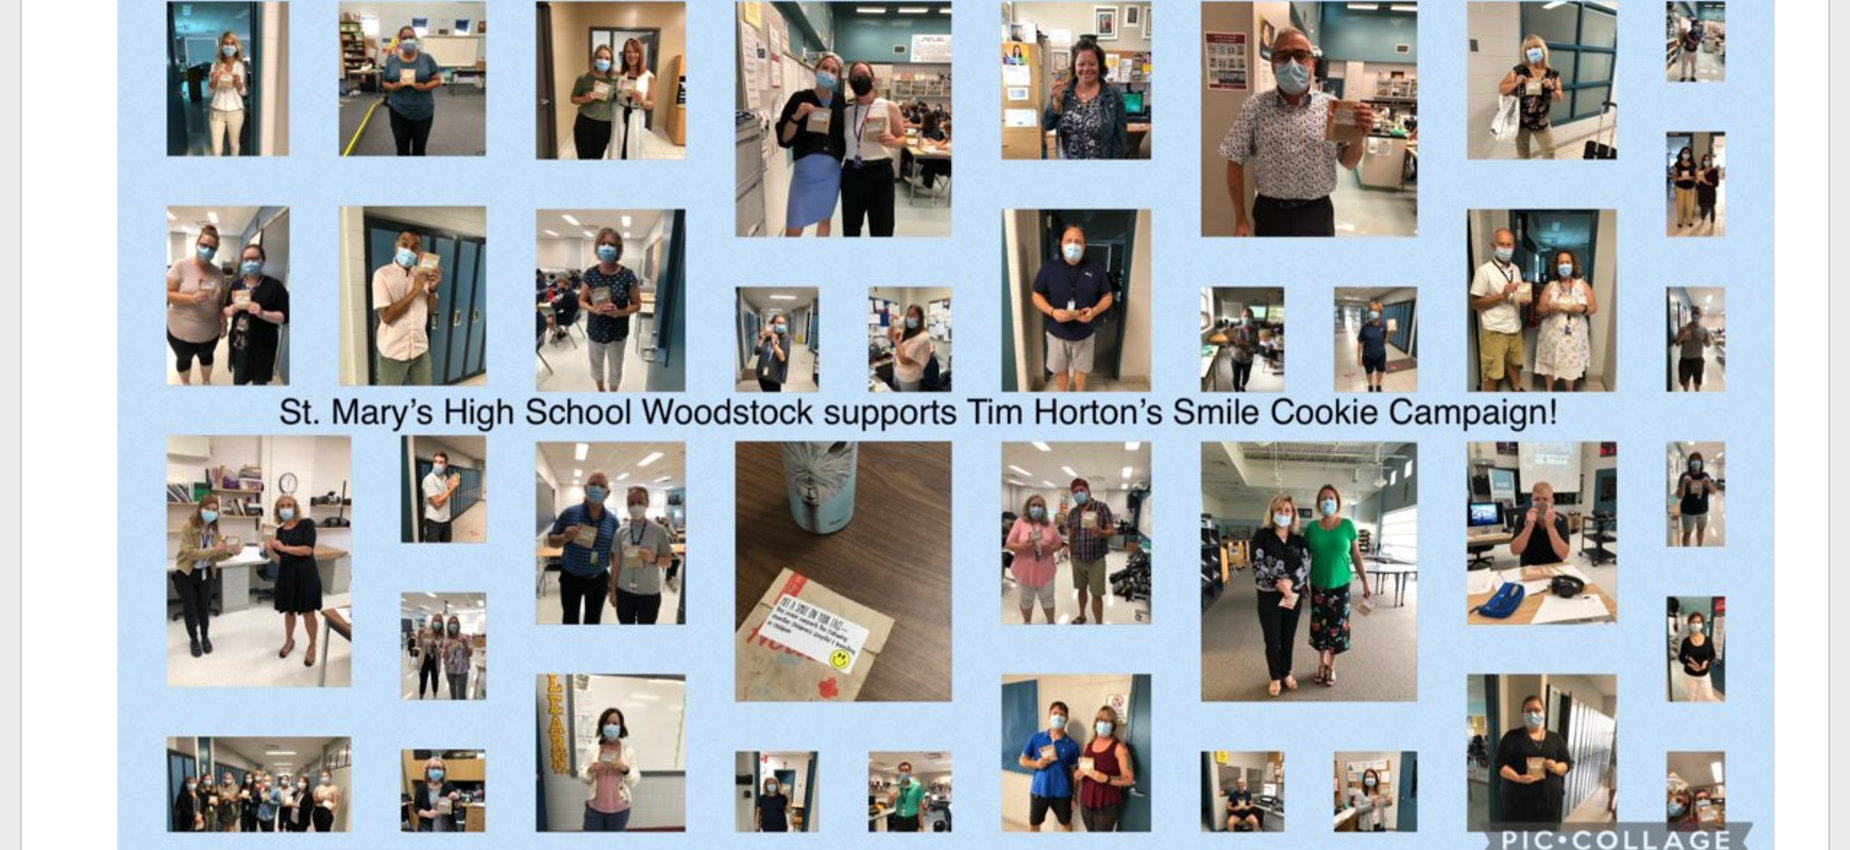 Tim Hortons smile cookie day at SMHS